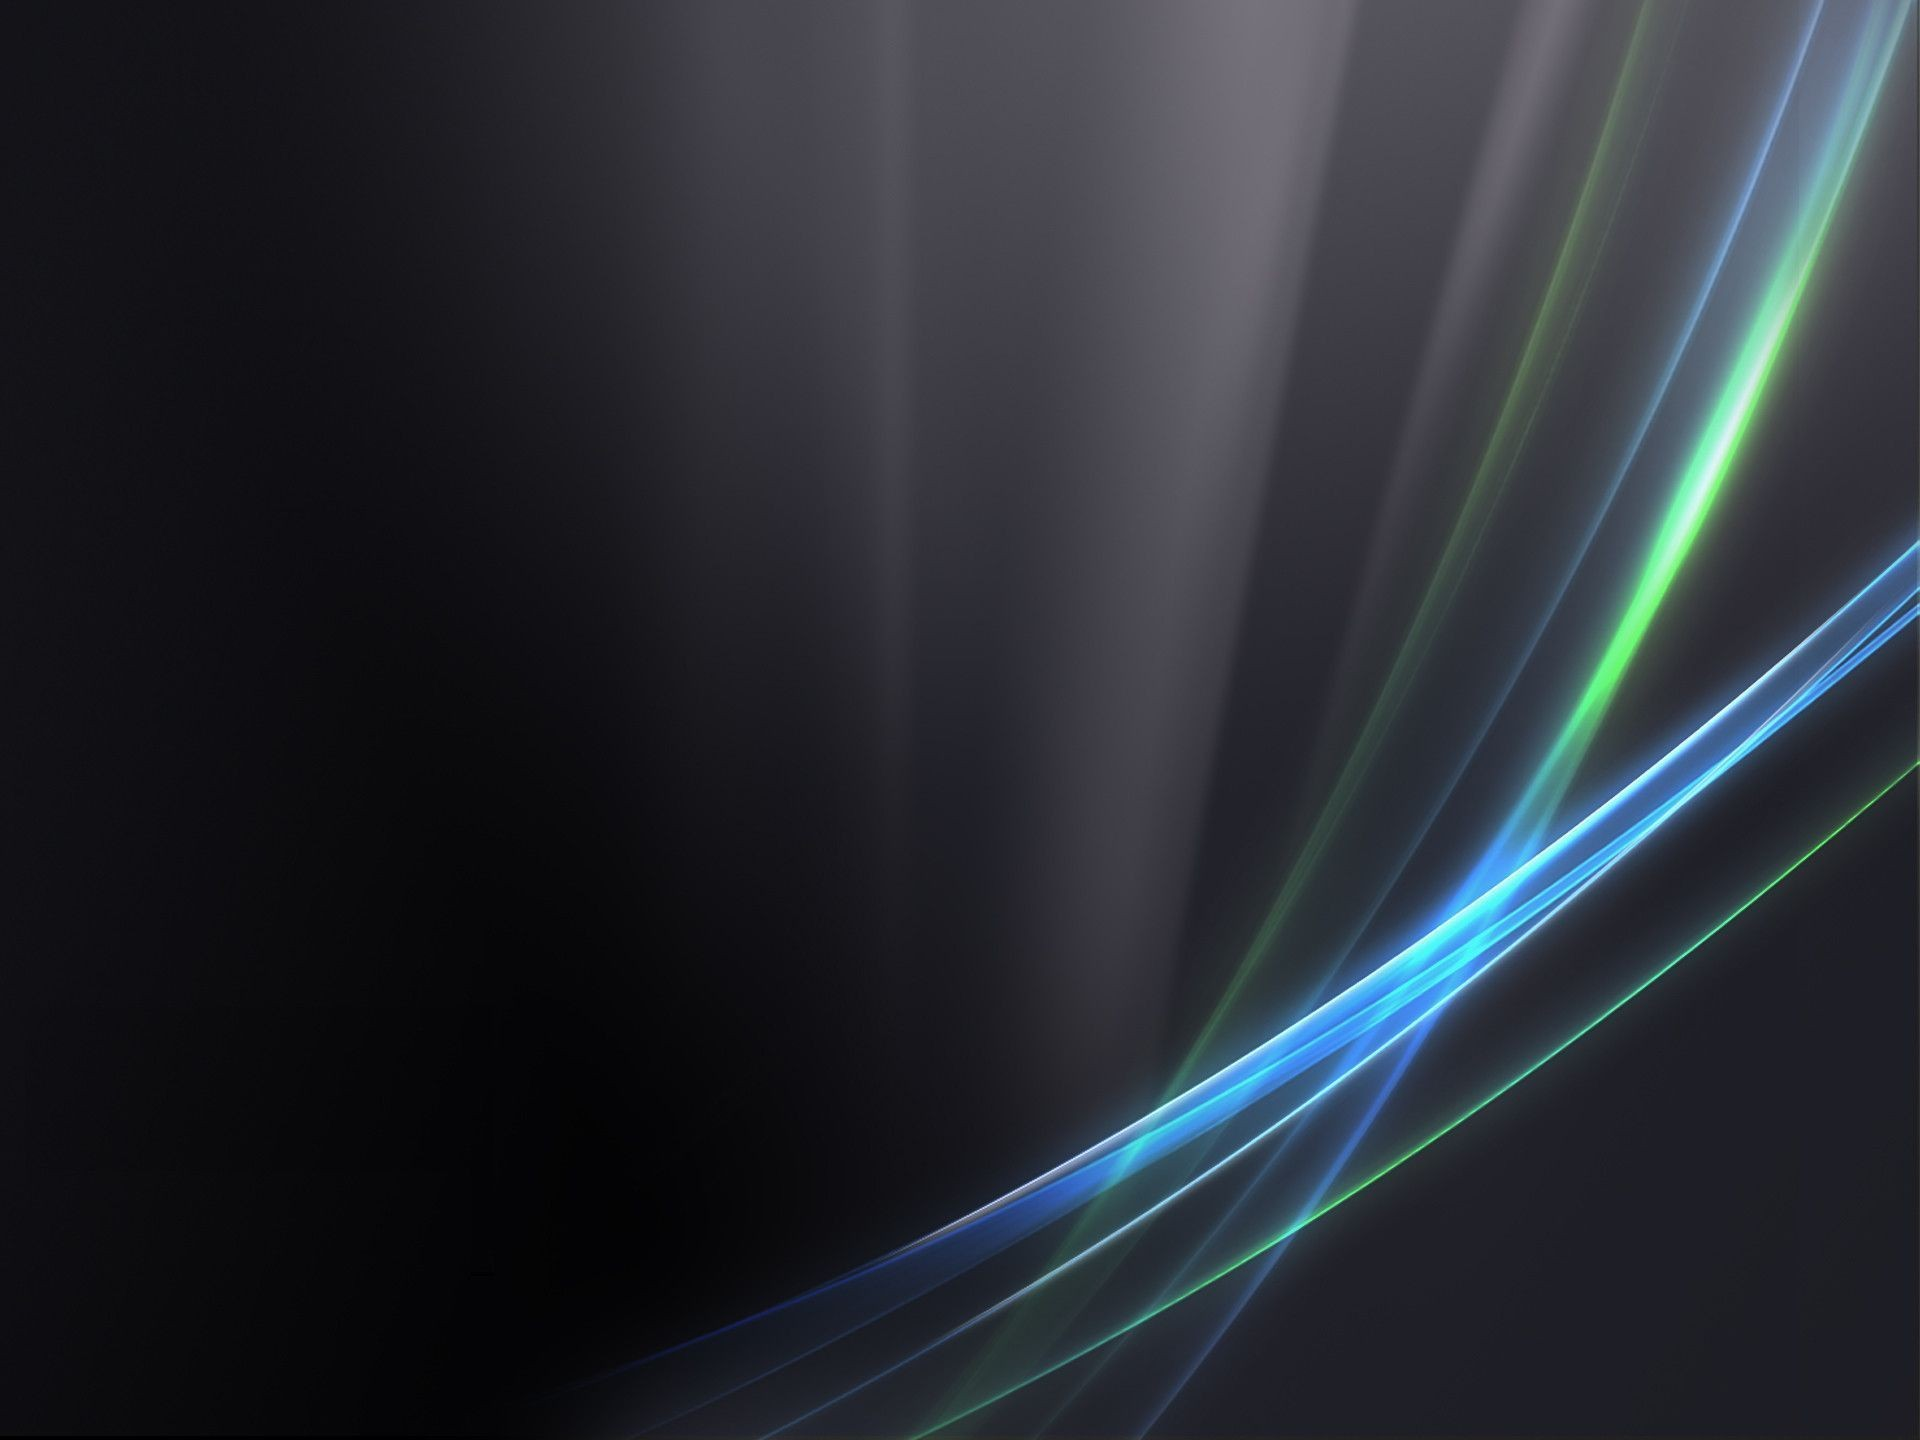 70 Microsoft backgrounds Download free amazing High